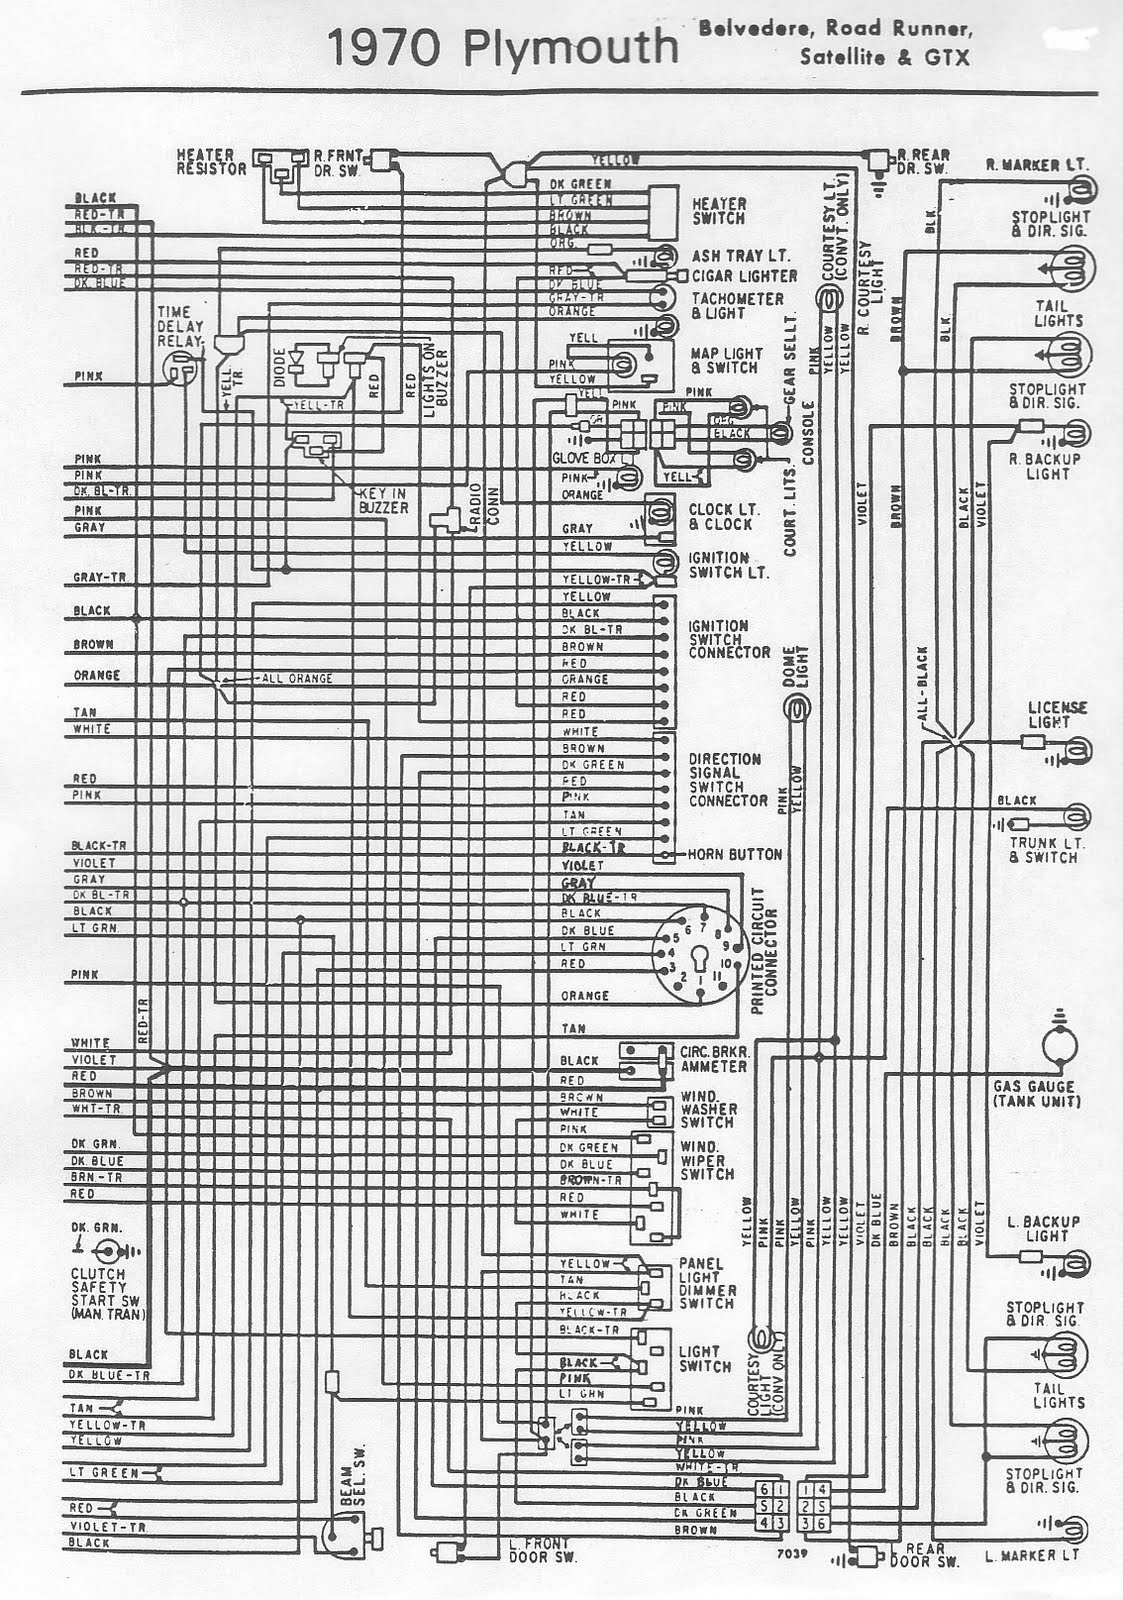 Magnificent 71 Plymouth Gtx Wiring Diagram Free Picture Diagram Data Schema Wiring 101 Photwellnesstrialsorg